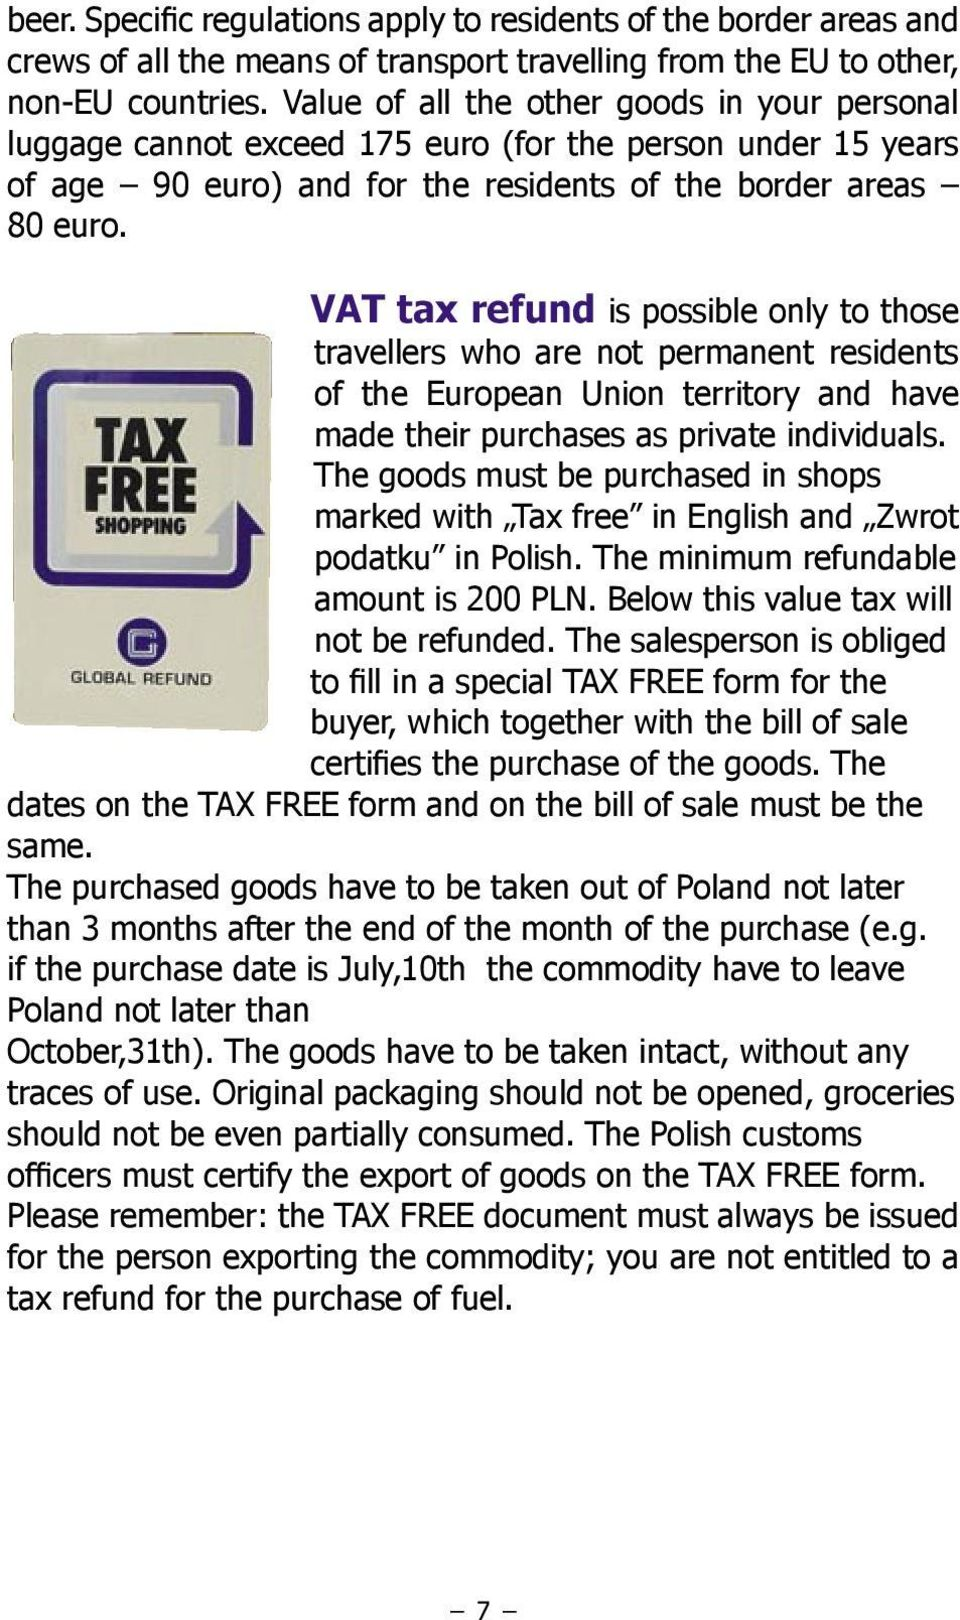 VAT tax refund is possible only to those travellers who are not permanent residents of the European Union territory and have made their purchases as private individuals.